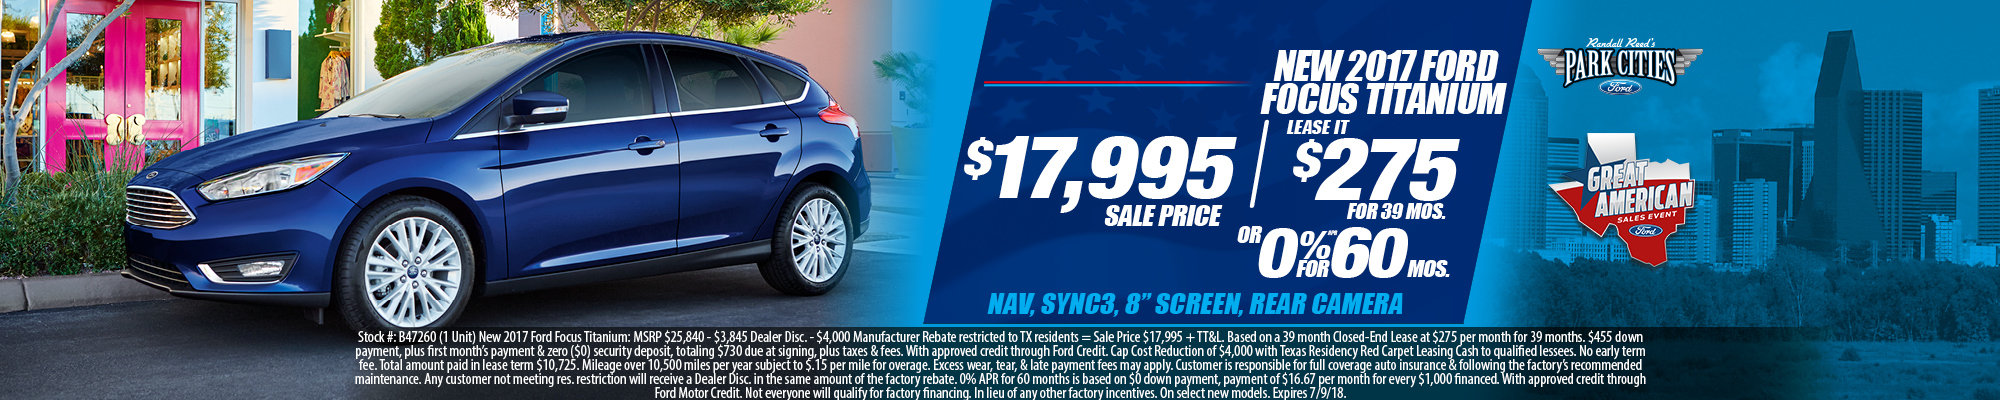 Special offer on 2017 Ford Focus NEW 2017 FORD FOCUS TITANIUM SPECIAL IN DALLAS, TX